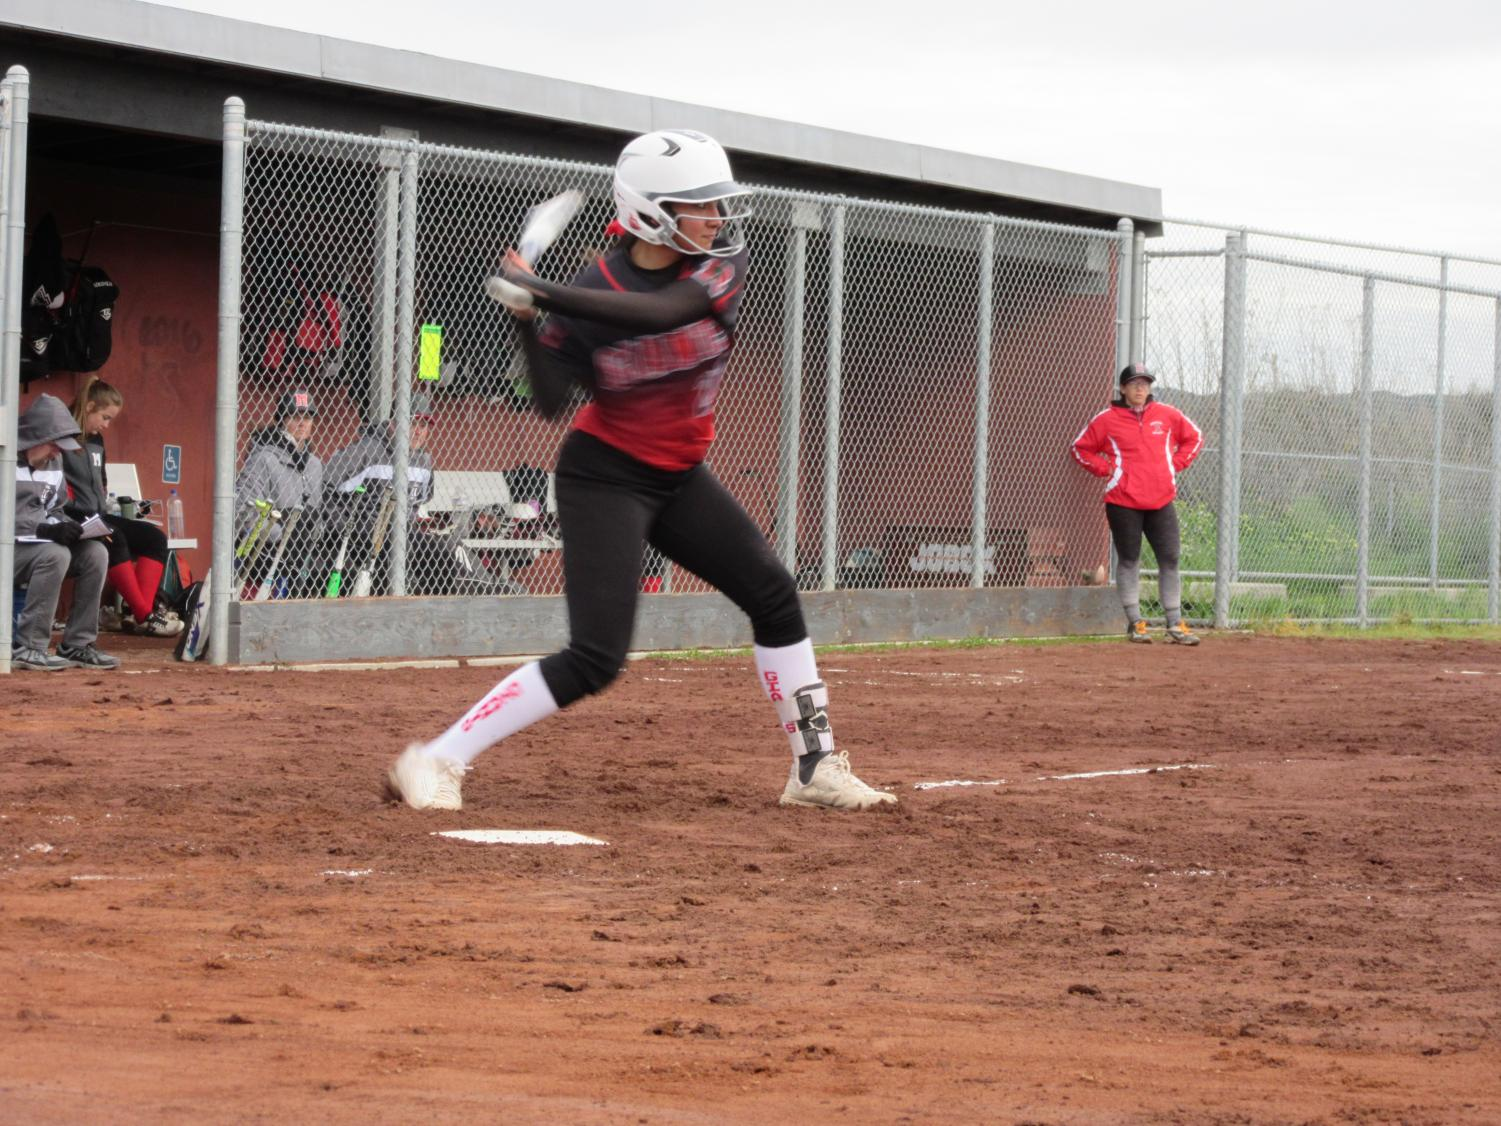 Hoping to spark a run, Kaleikini hit's a leadoff single to open the inning.